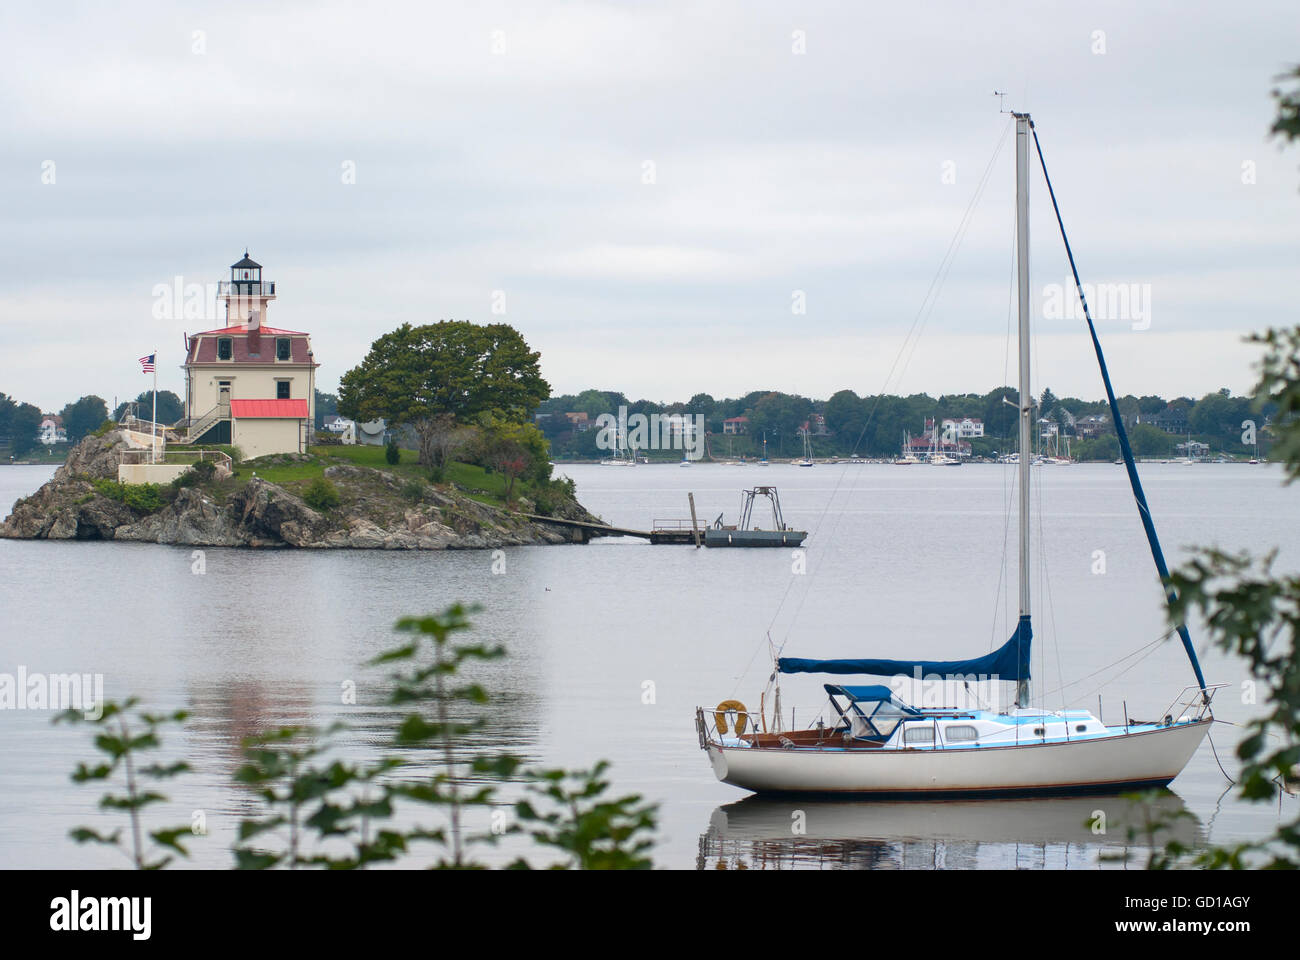 Sailboat anchored by Pomham Rocks lighthouse on a cloudy day in Rhode Island. - Stock Image